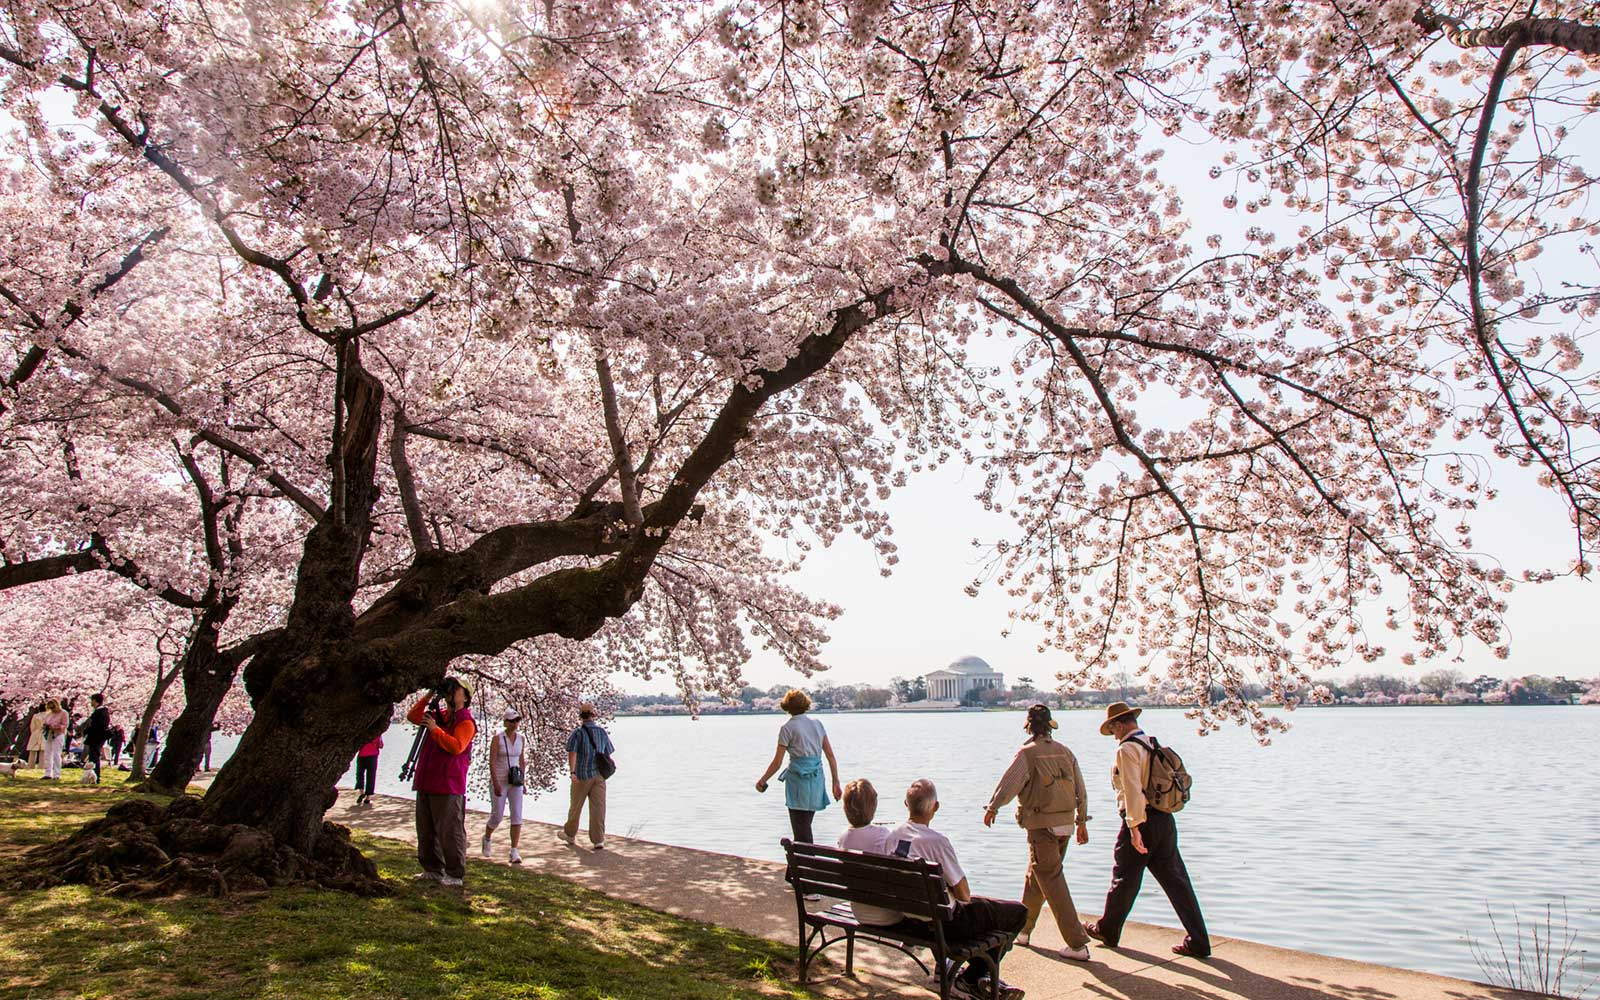 Cherry Blossom Festival in Washington, D.C.